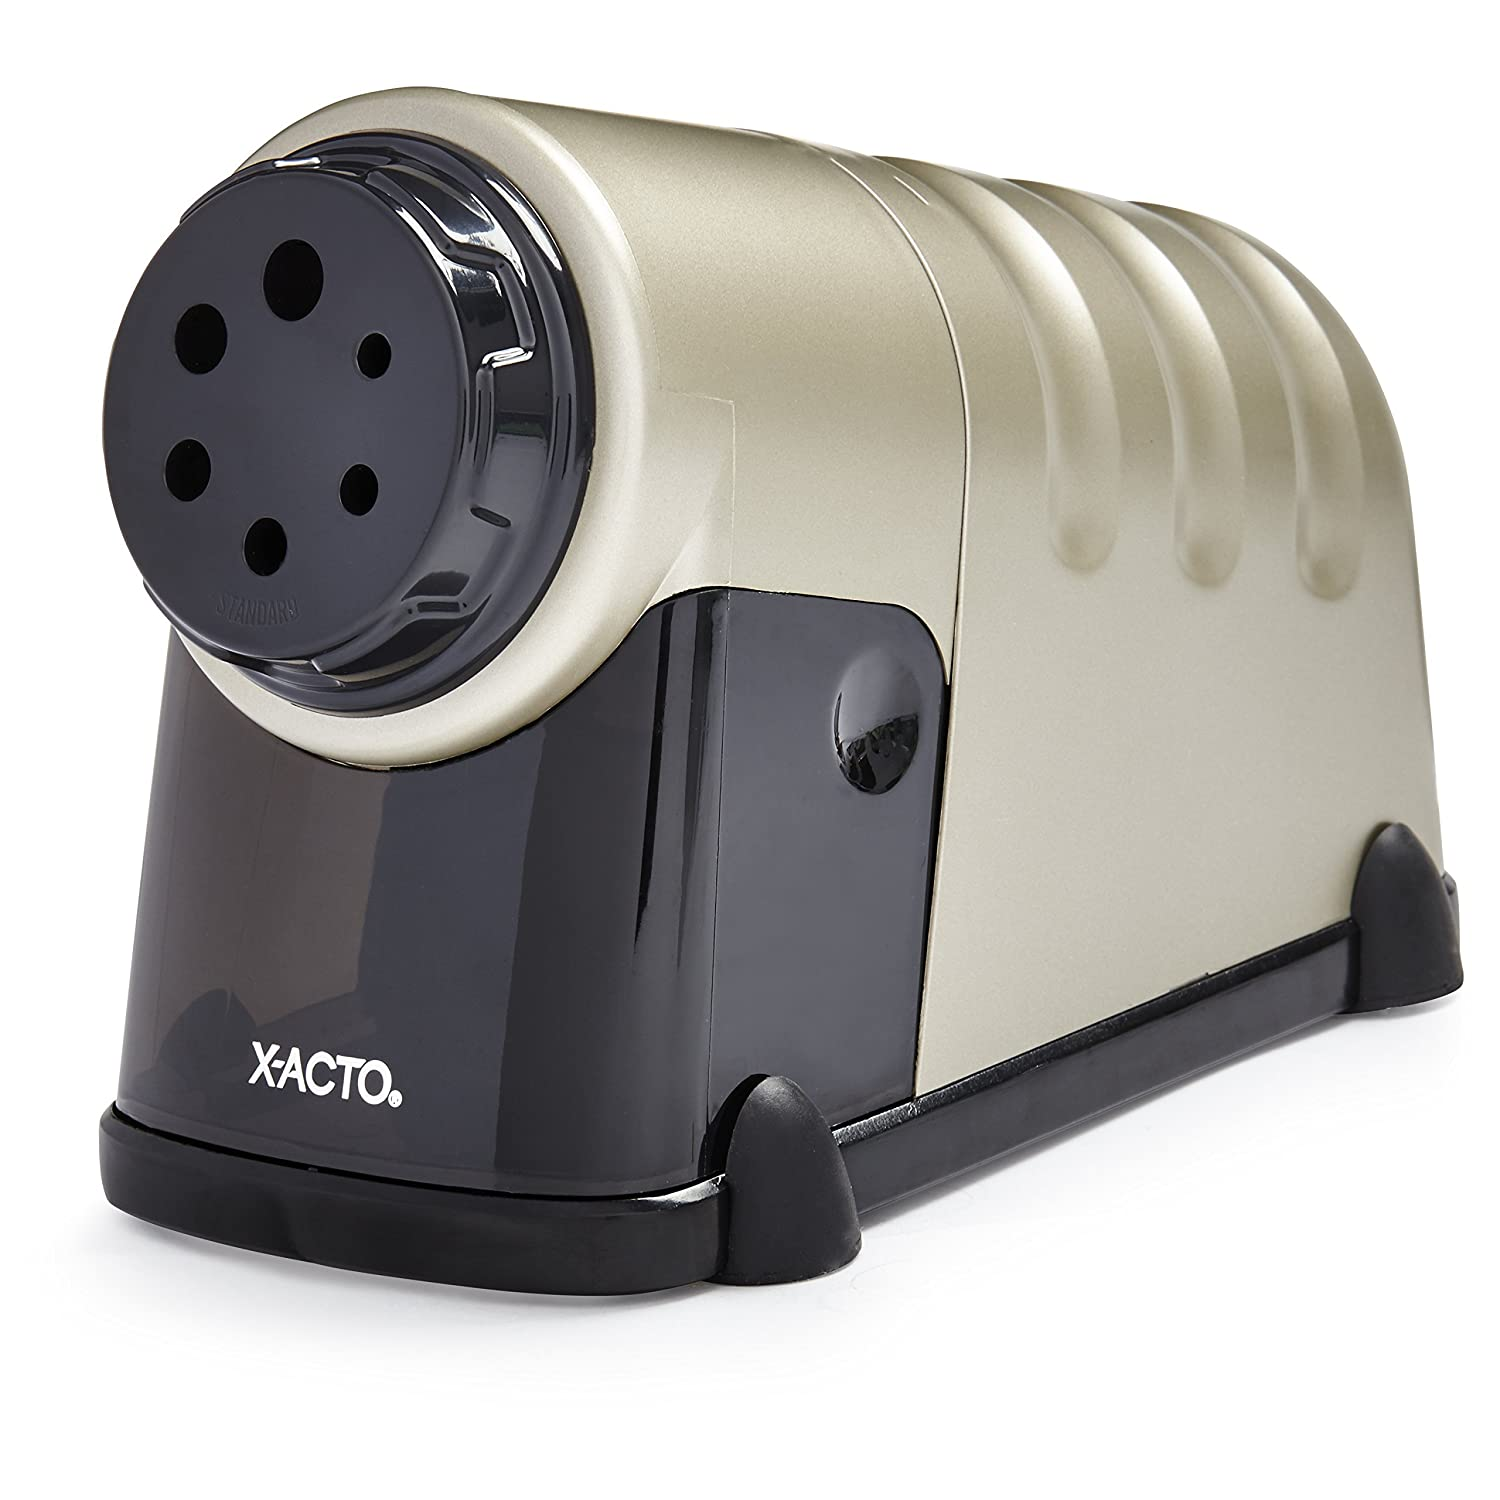 X-ACTO High Volume Commercial Electric Pencil Sharpener, Model 41, Beige Elmers 1606